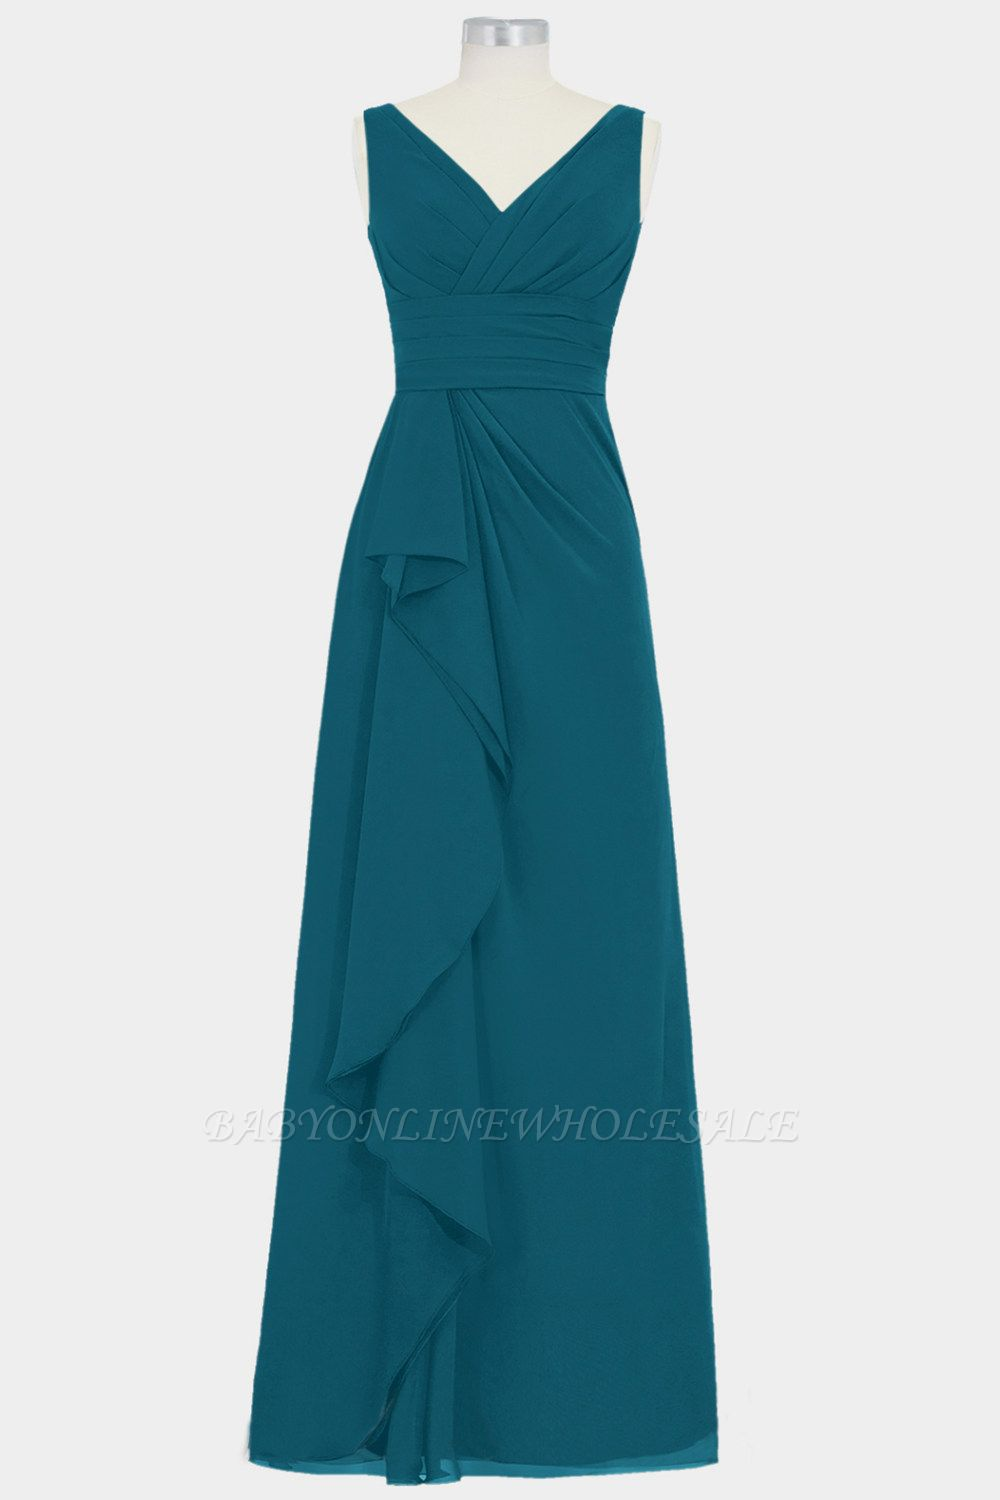 Summer Chiffon A-line Bridesmaid Dress | V-neck Floor Length Maid of honor Dress